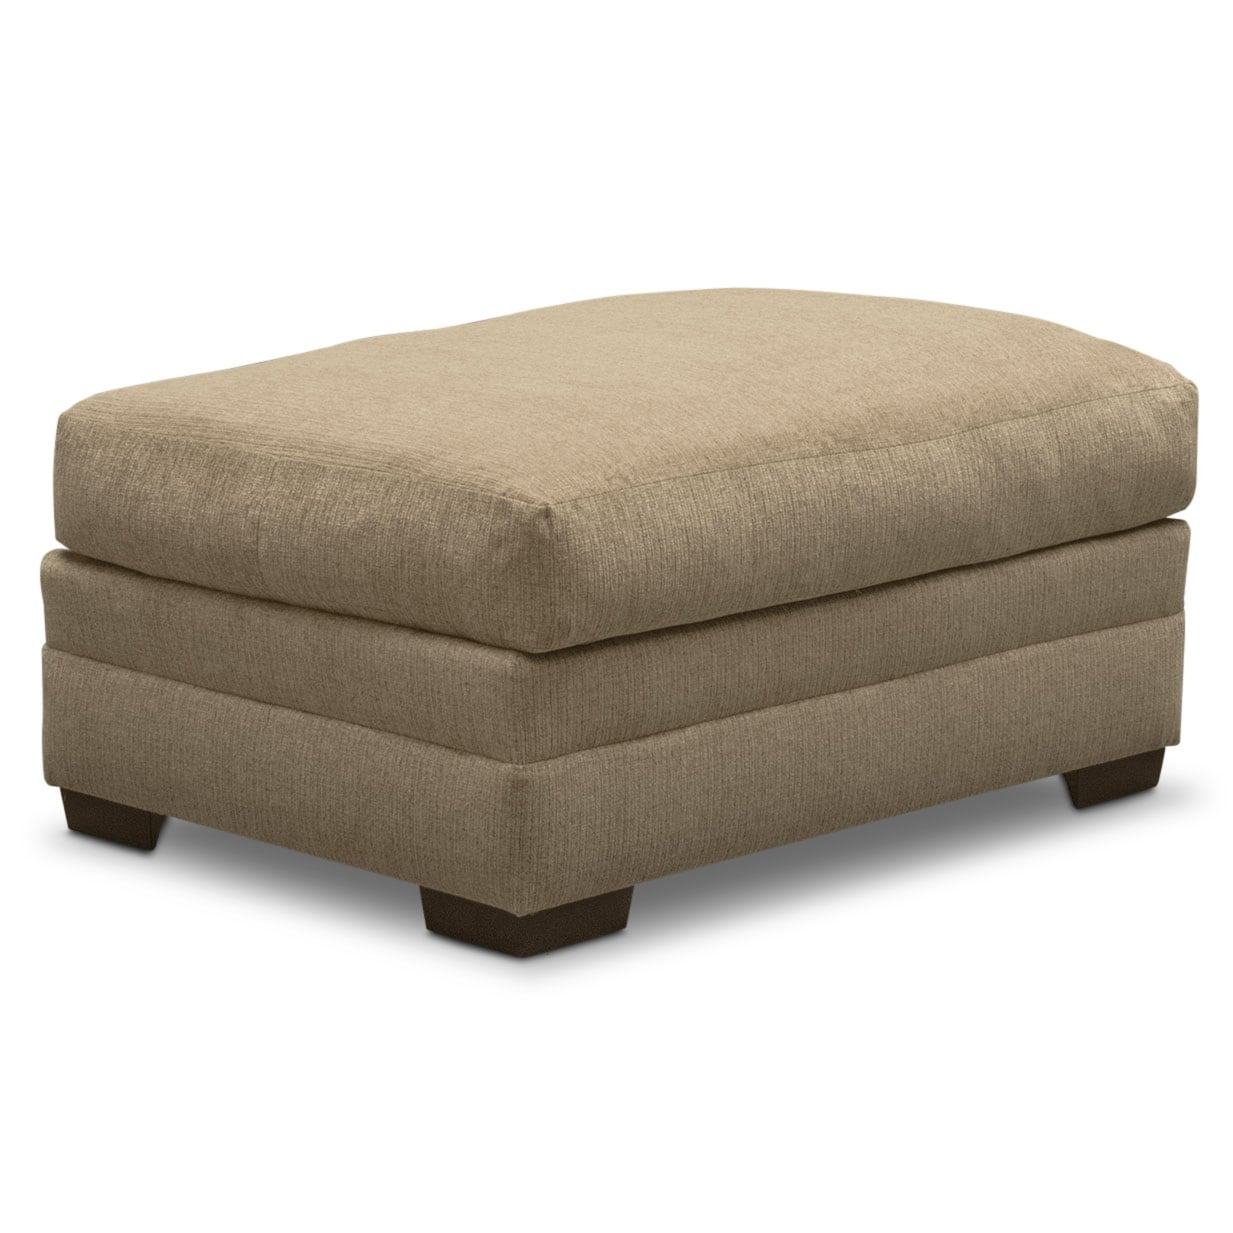 Living Room Furniture - Wilshire Ottoman - Taupe